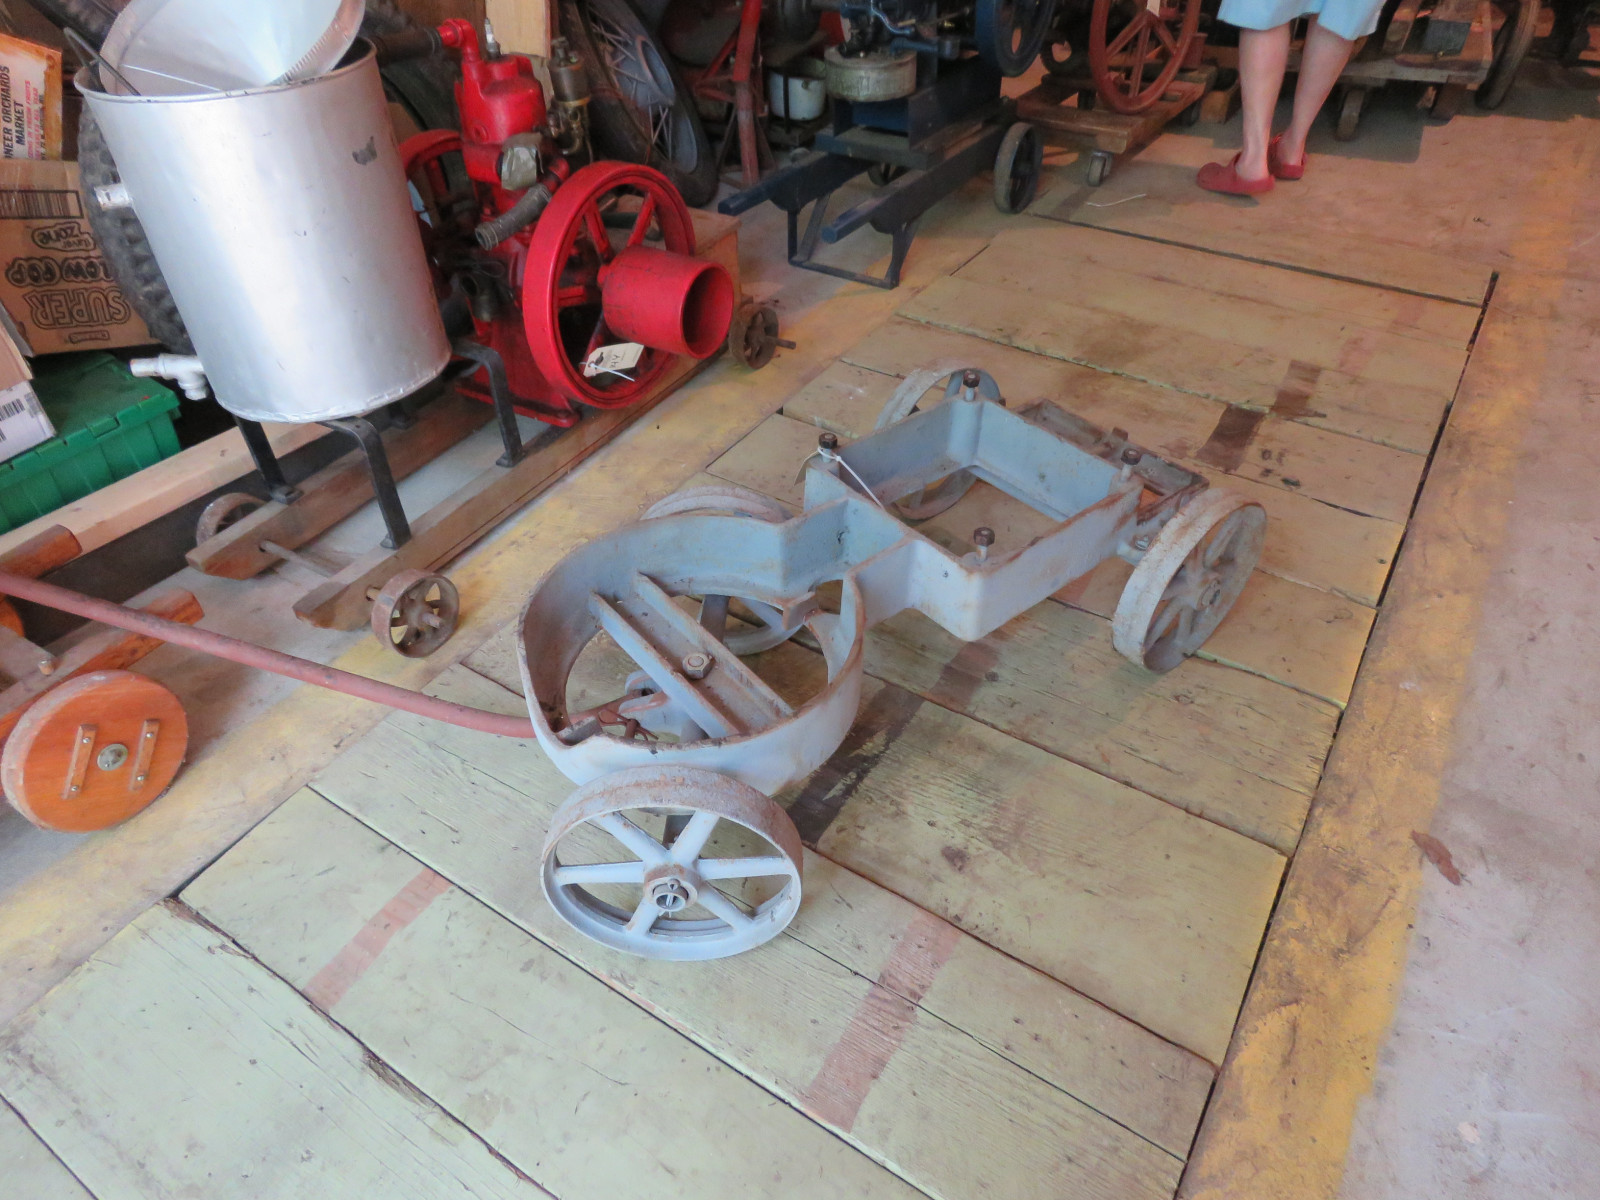 Rare Banjo Stationary Engine Cart - Image 1